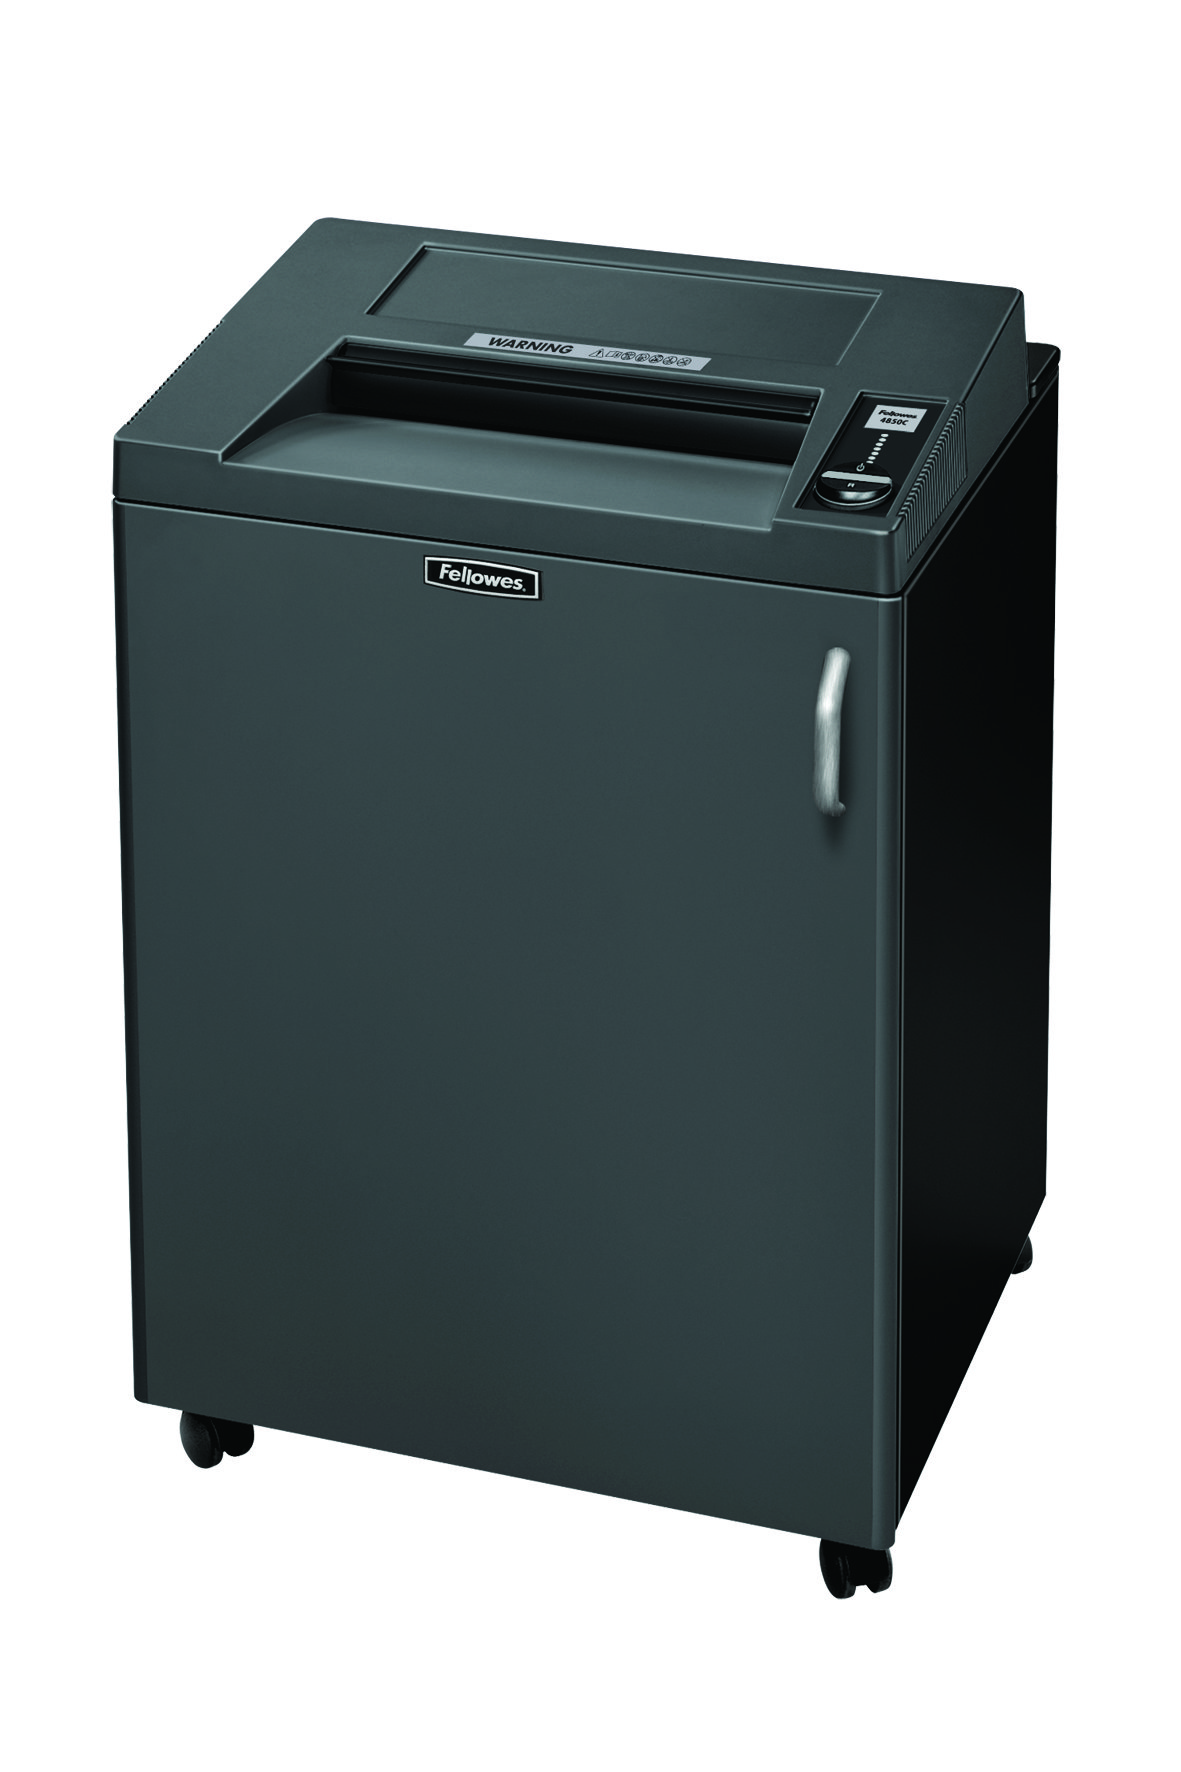 Destruidora de Papel Fellowes 4850C, 30fls, 165L, CD/DVDs com Rodas